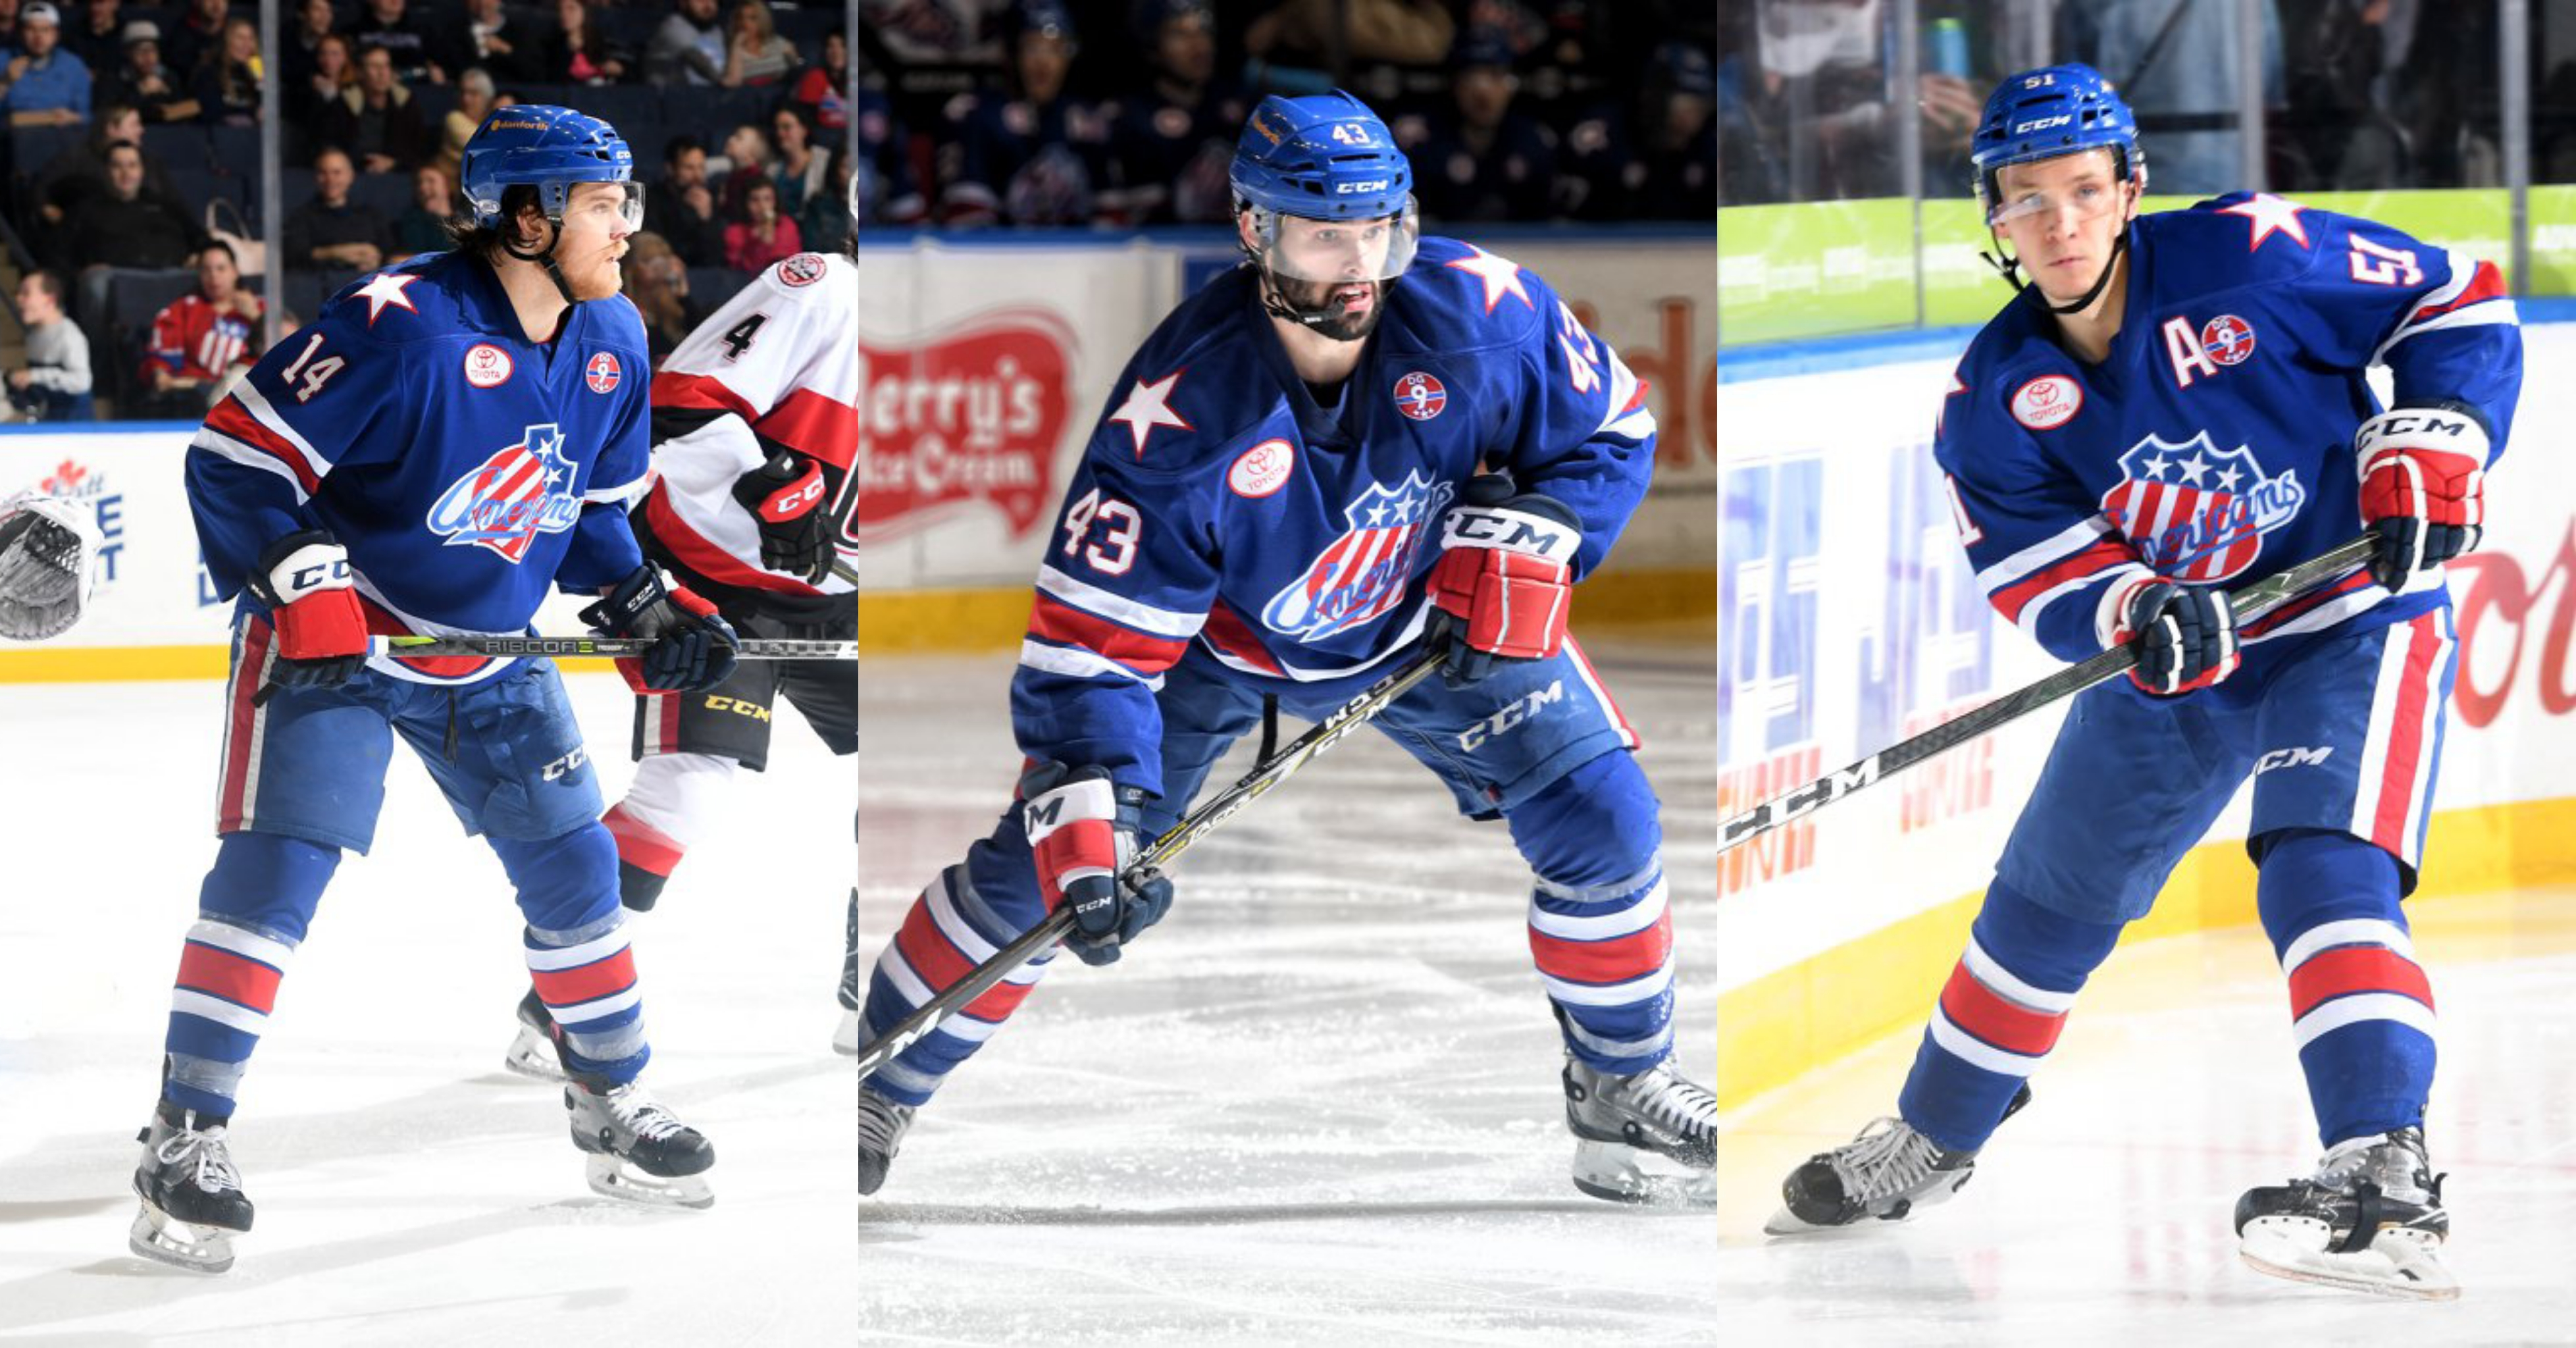 Three Harvard Friends are Leading the Amerks at Center